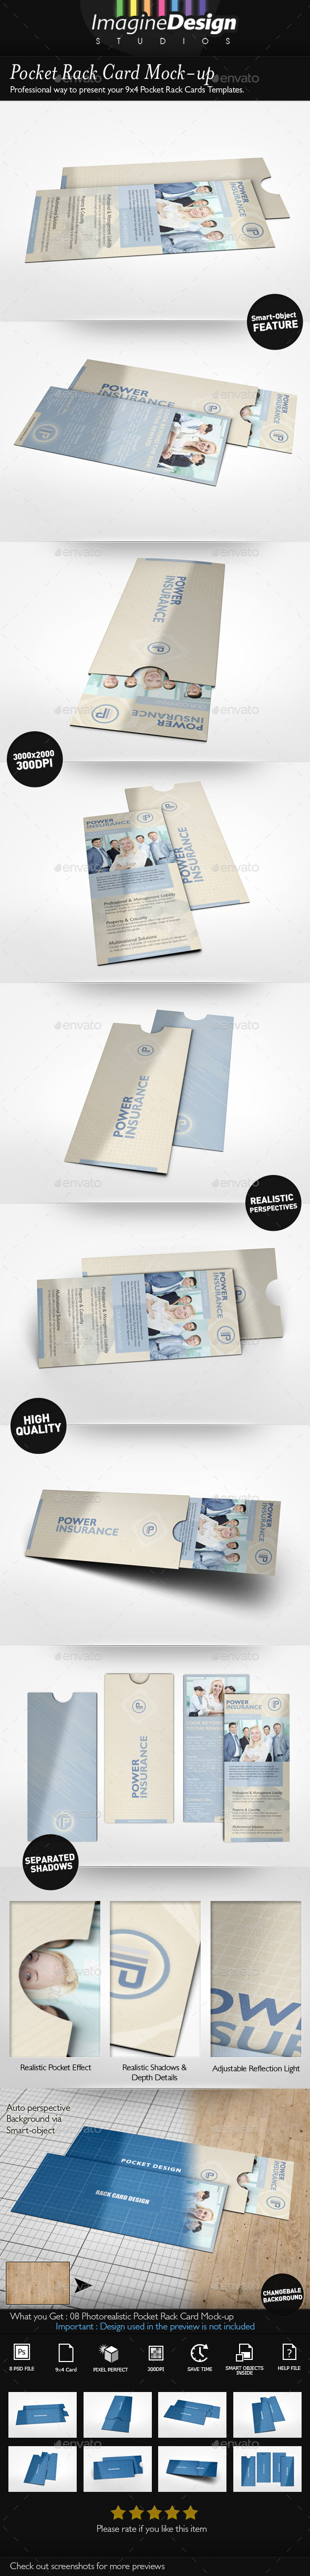 GraphicRiver Pocket Rack Card Mock-up 8998804